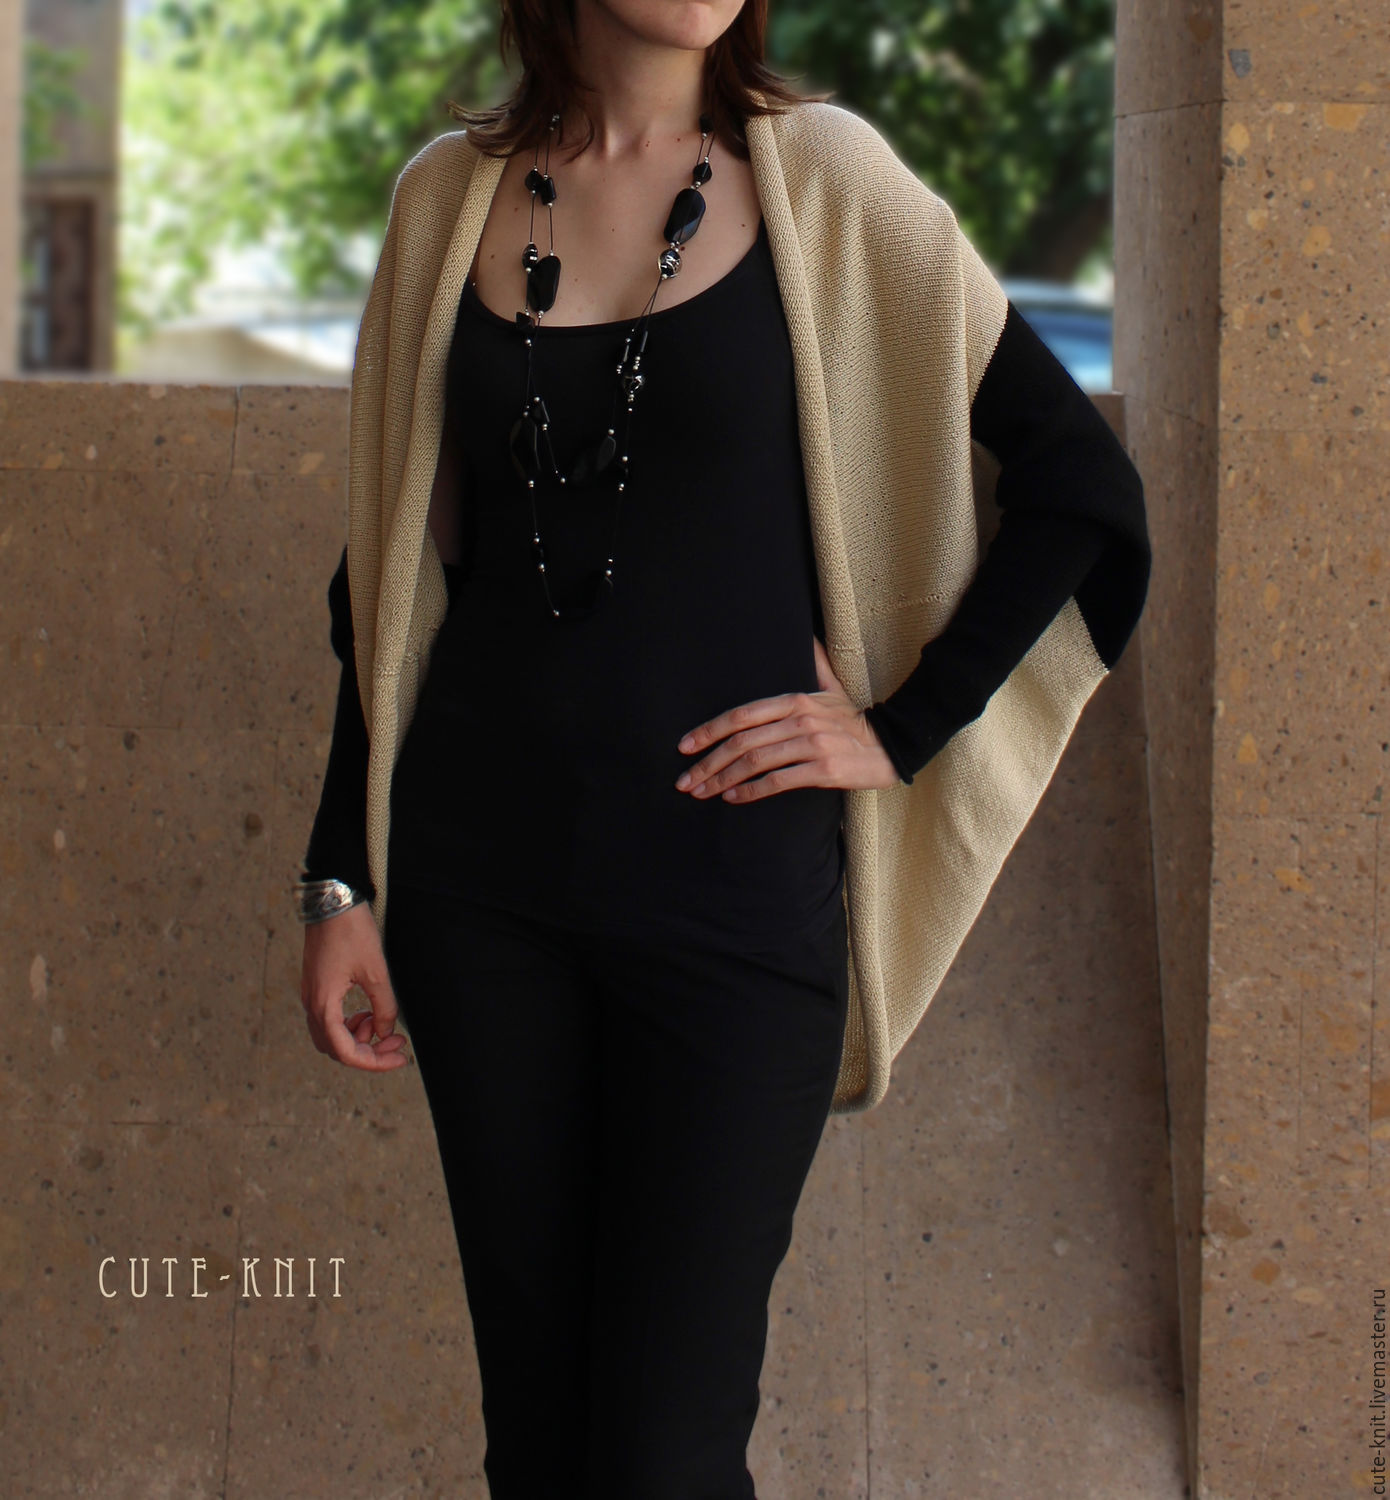 To better visualize the model, click on the photo CUTE-KNIT NAT Onipchenko Fair masters to Buy women's summer knit Cape with sleeves